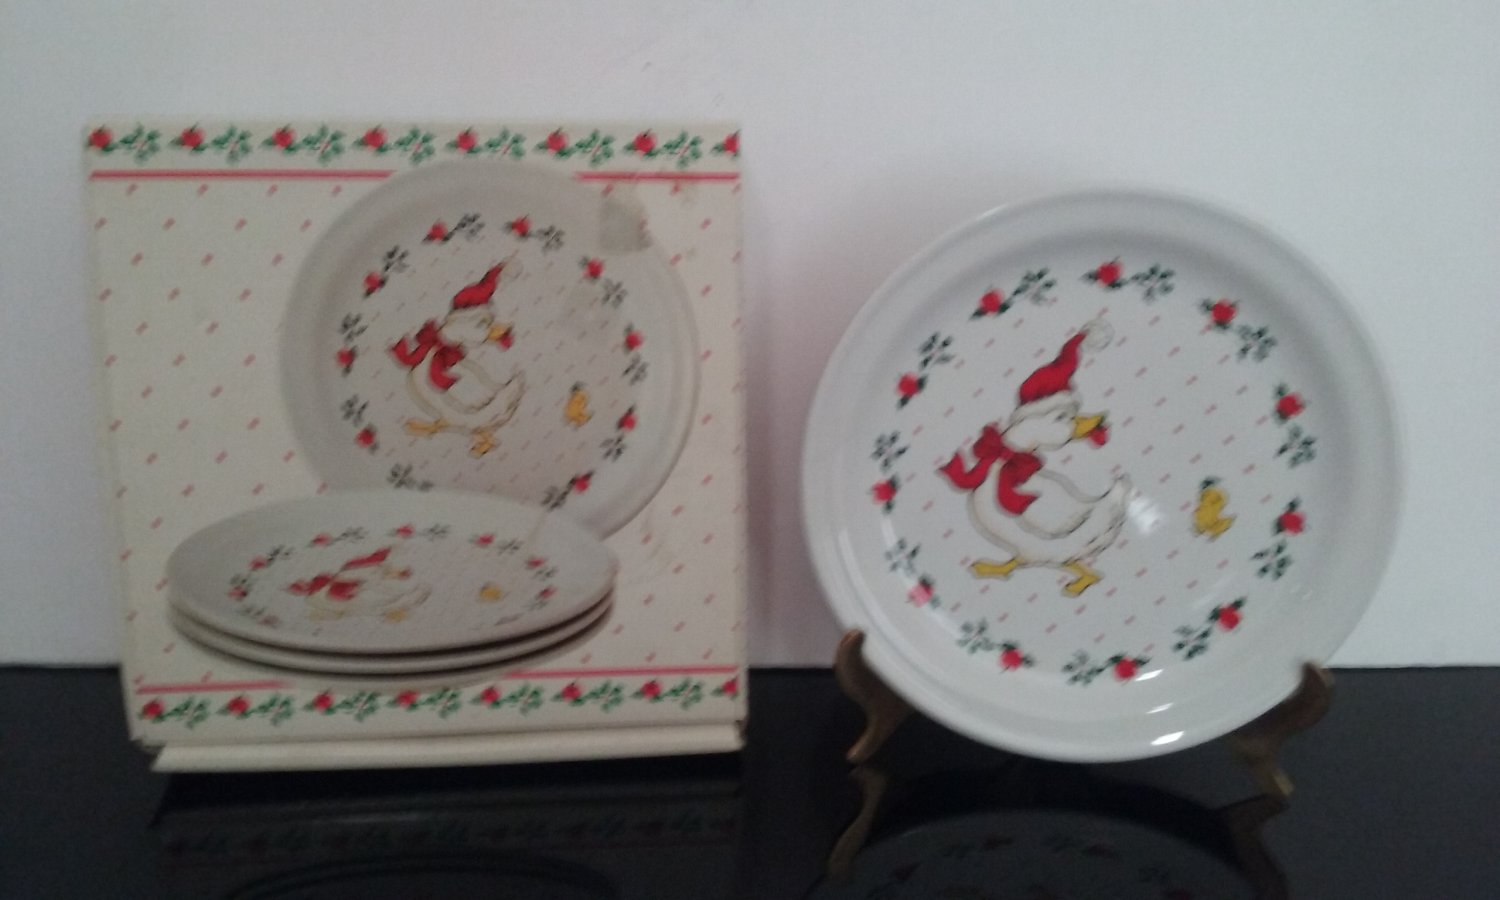 Vintage Home Style 4 Piece Cake Plate Set -  Ducks in Christmas Theme - Made in Japan - (1403)